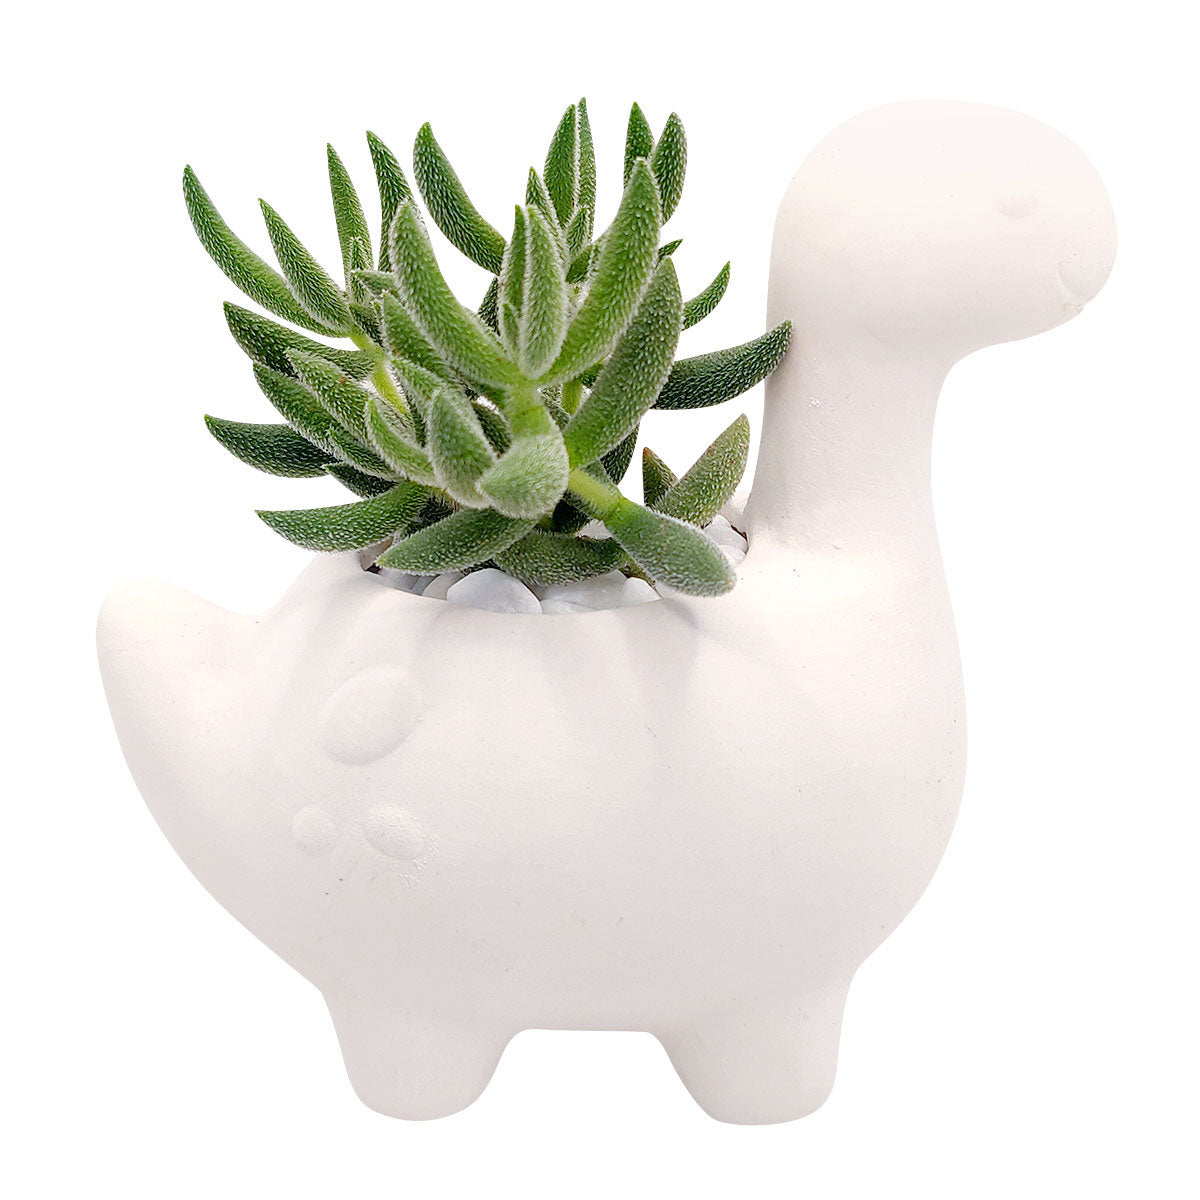 DIY Ceramic Dinosaur Pot for sale, White Ceramic Animals Succulent Planter, Crafts for Kids, Unique Succulent gift ideas, White ceramic succulent pot planter